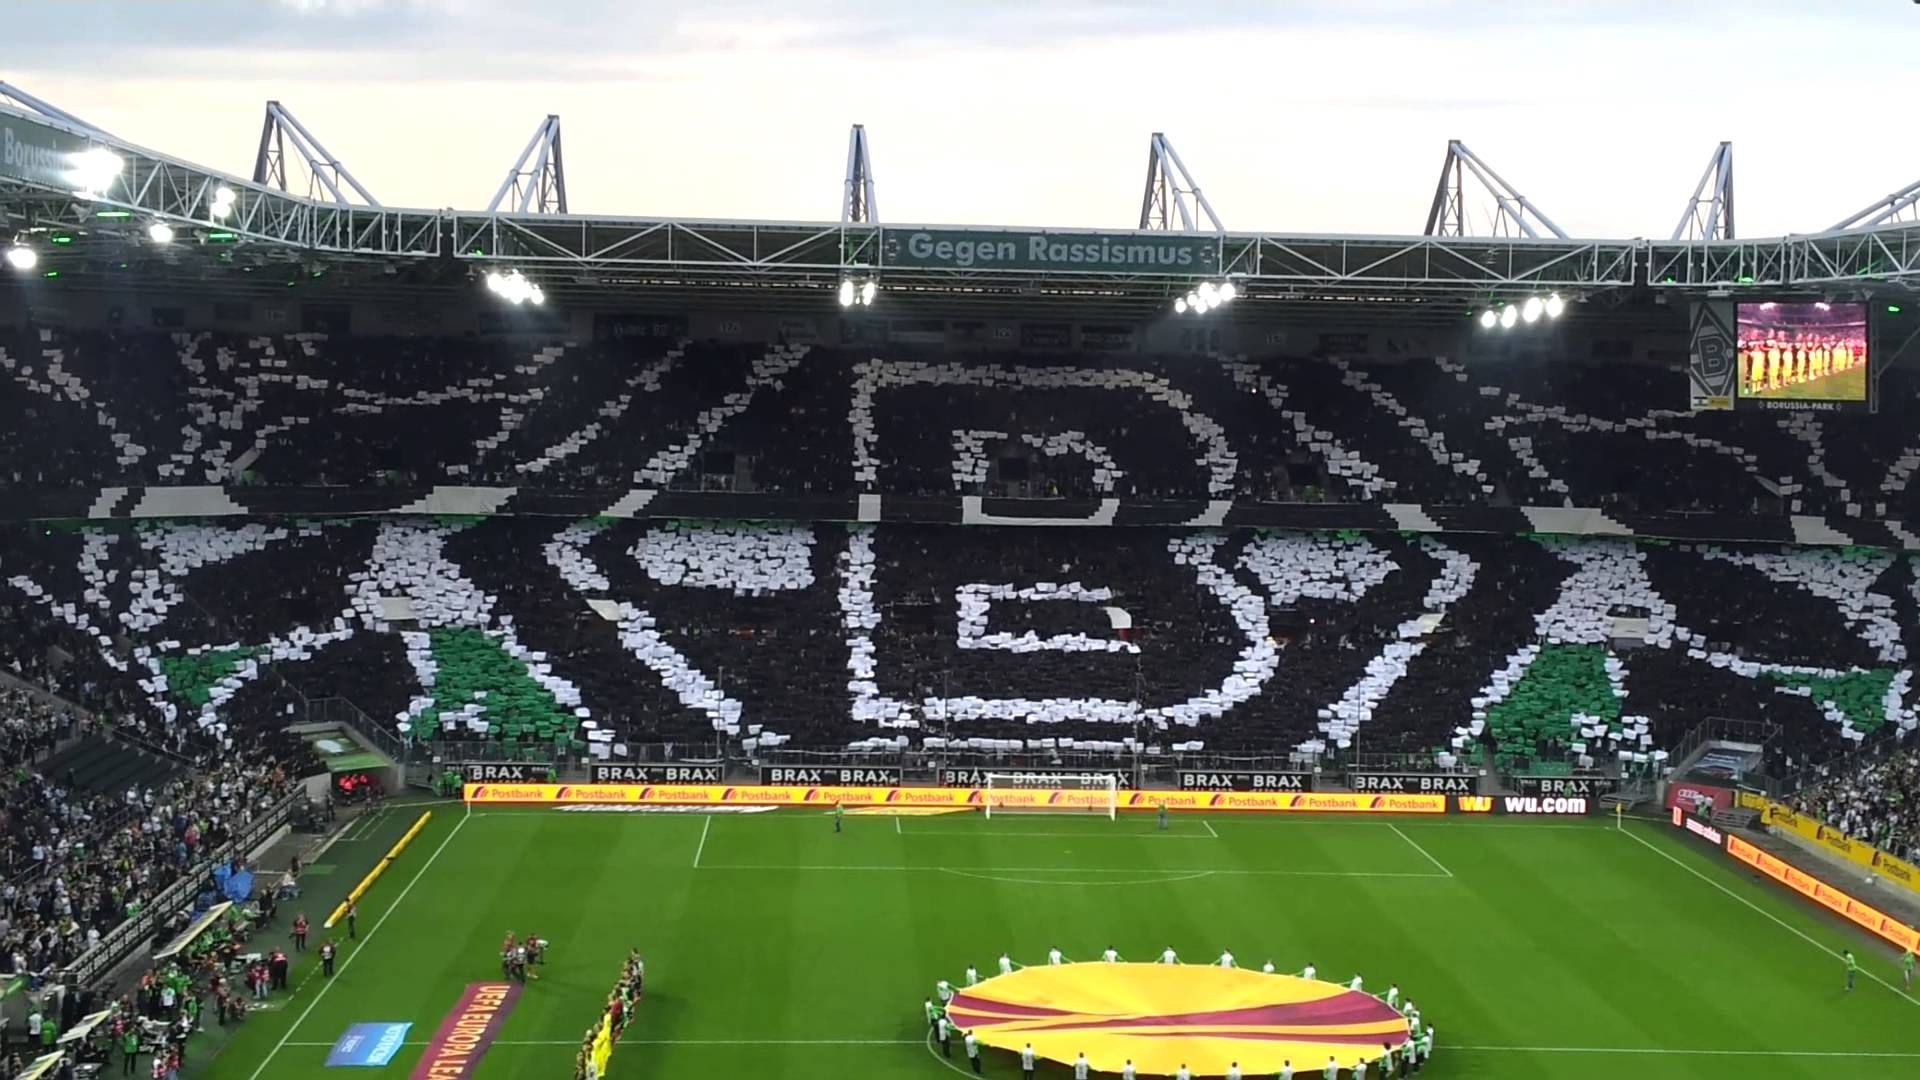 borussia monchengladbach wallpapers full hd pictures. Black Bedroom Furniture Sets. Home Design Ideas